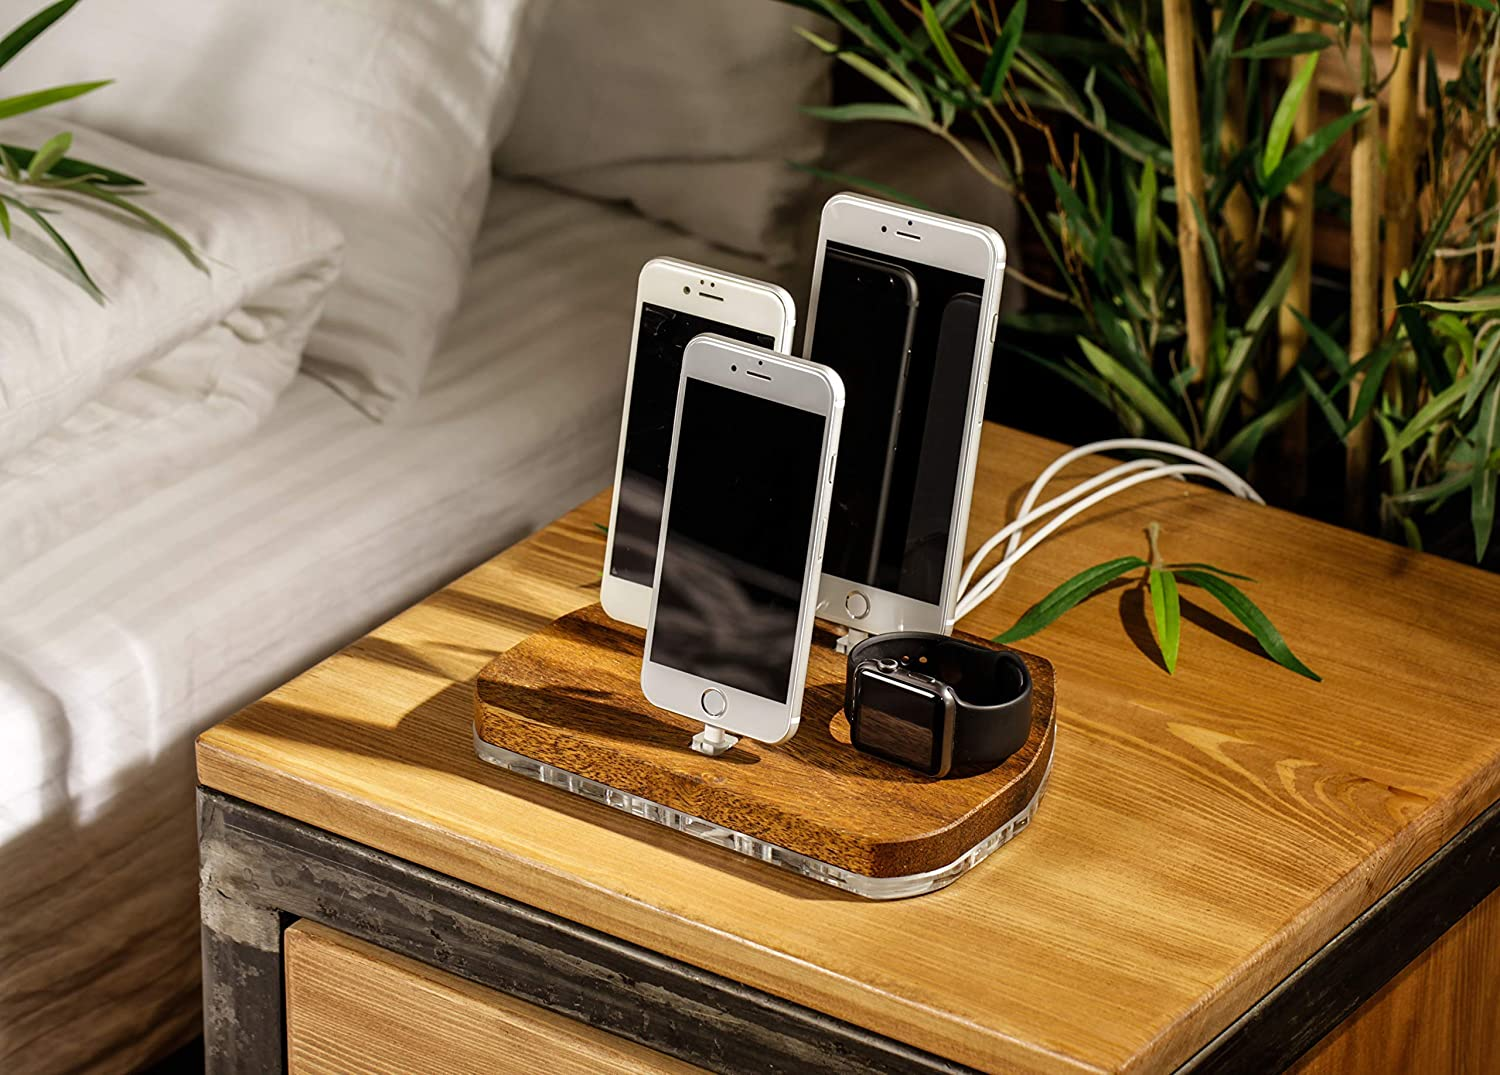 Phone,Tablet Organizer,Merbau Docking Station,Watch Charging Stand,Holder, Compatible with iPhone XR/Xs/X/8/7/6/5, Apple Watch Series 1/2/3/4/5 iPad Mini/Air/Pro Airpods Pre-Installed USB Cables